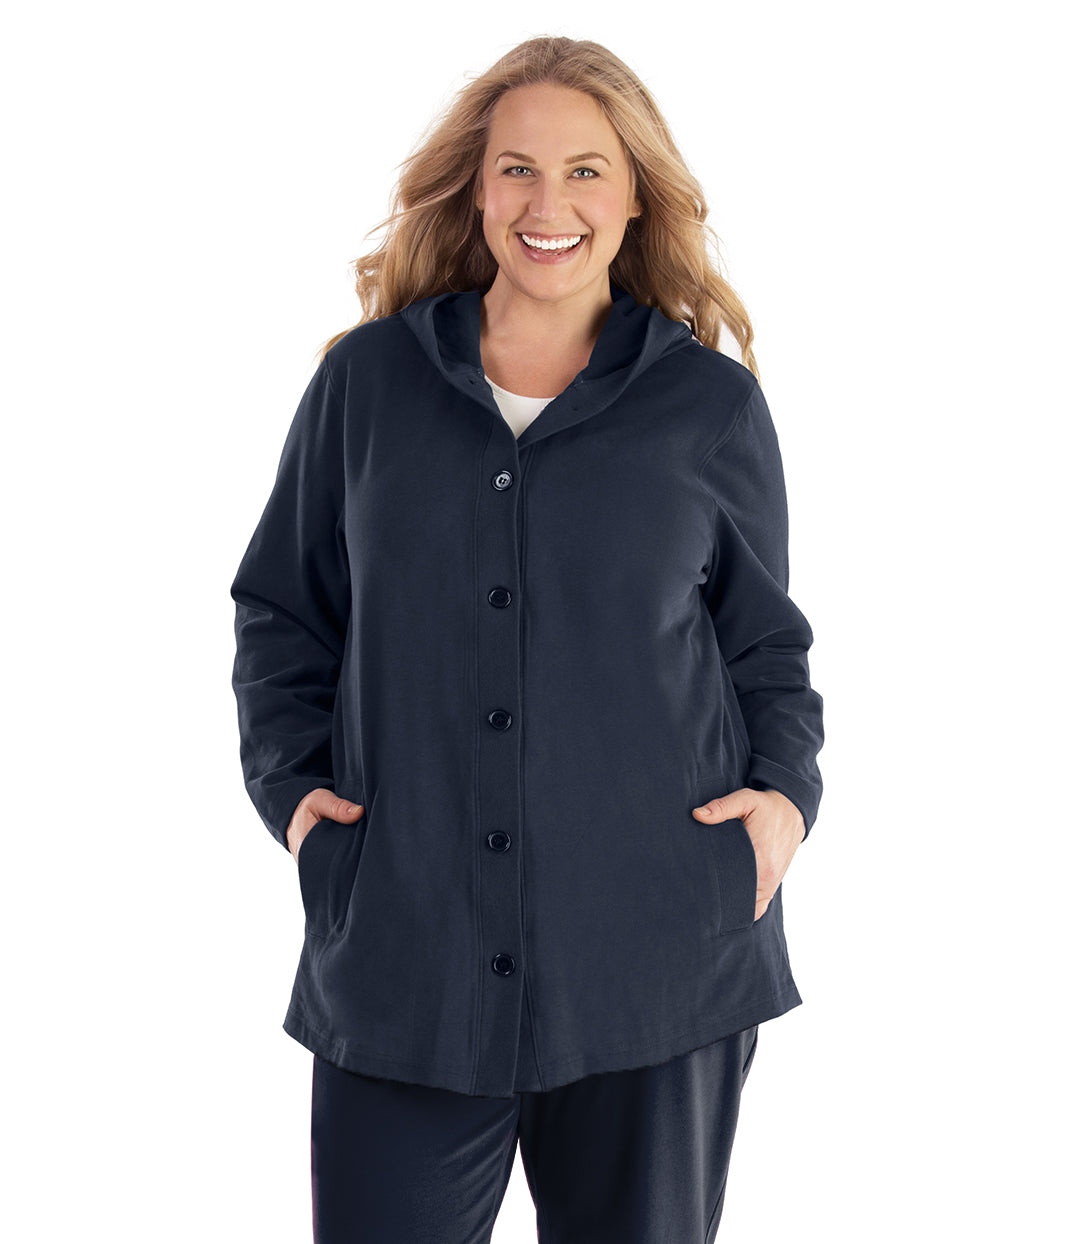 Seashell™ Cotton Casual Button Up Hoodie-Plus Size Outerwear Clothing-Hop Wo Trading Co Ltd-XL-Navy Blue-JunoActive